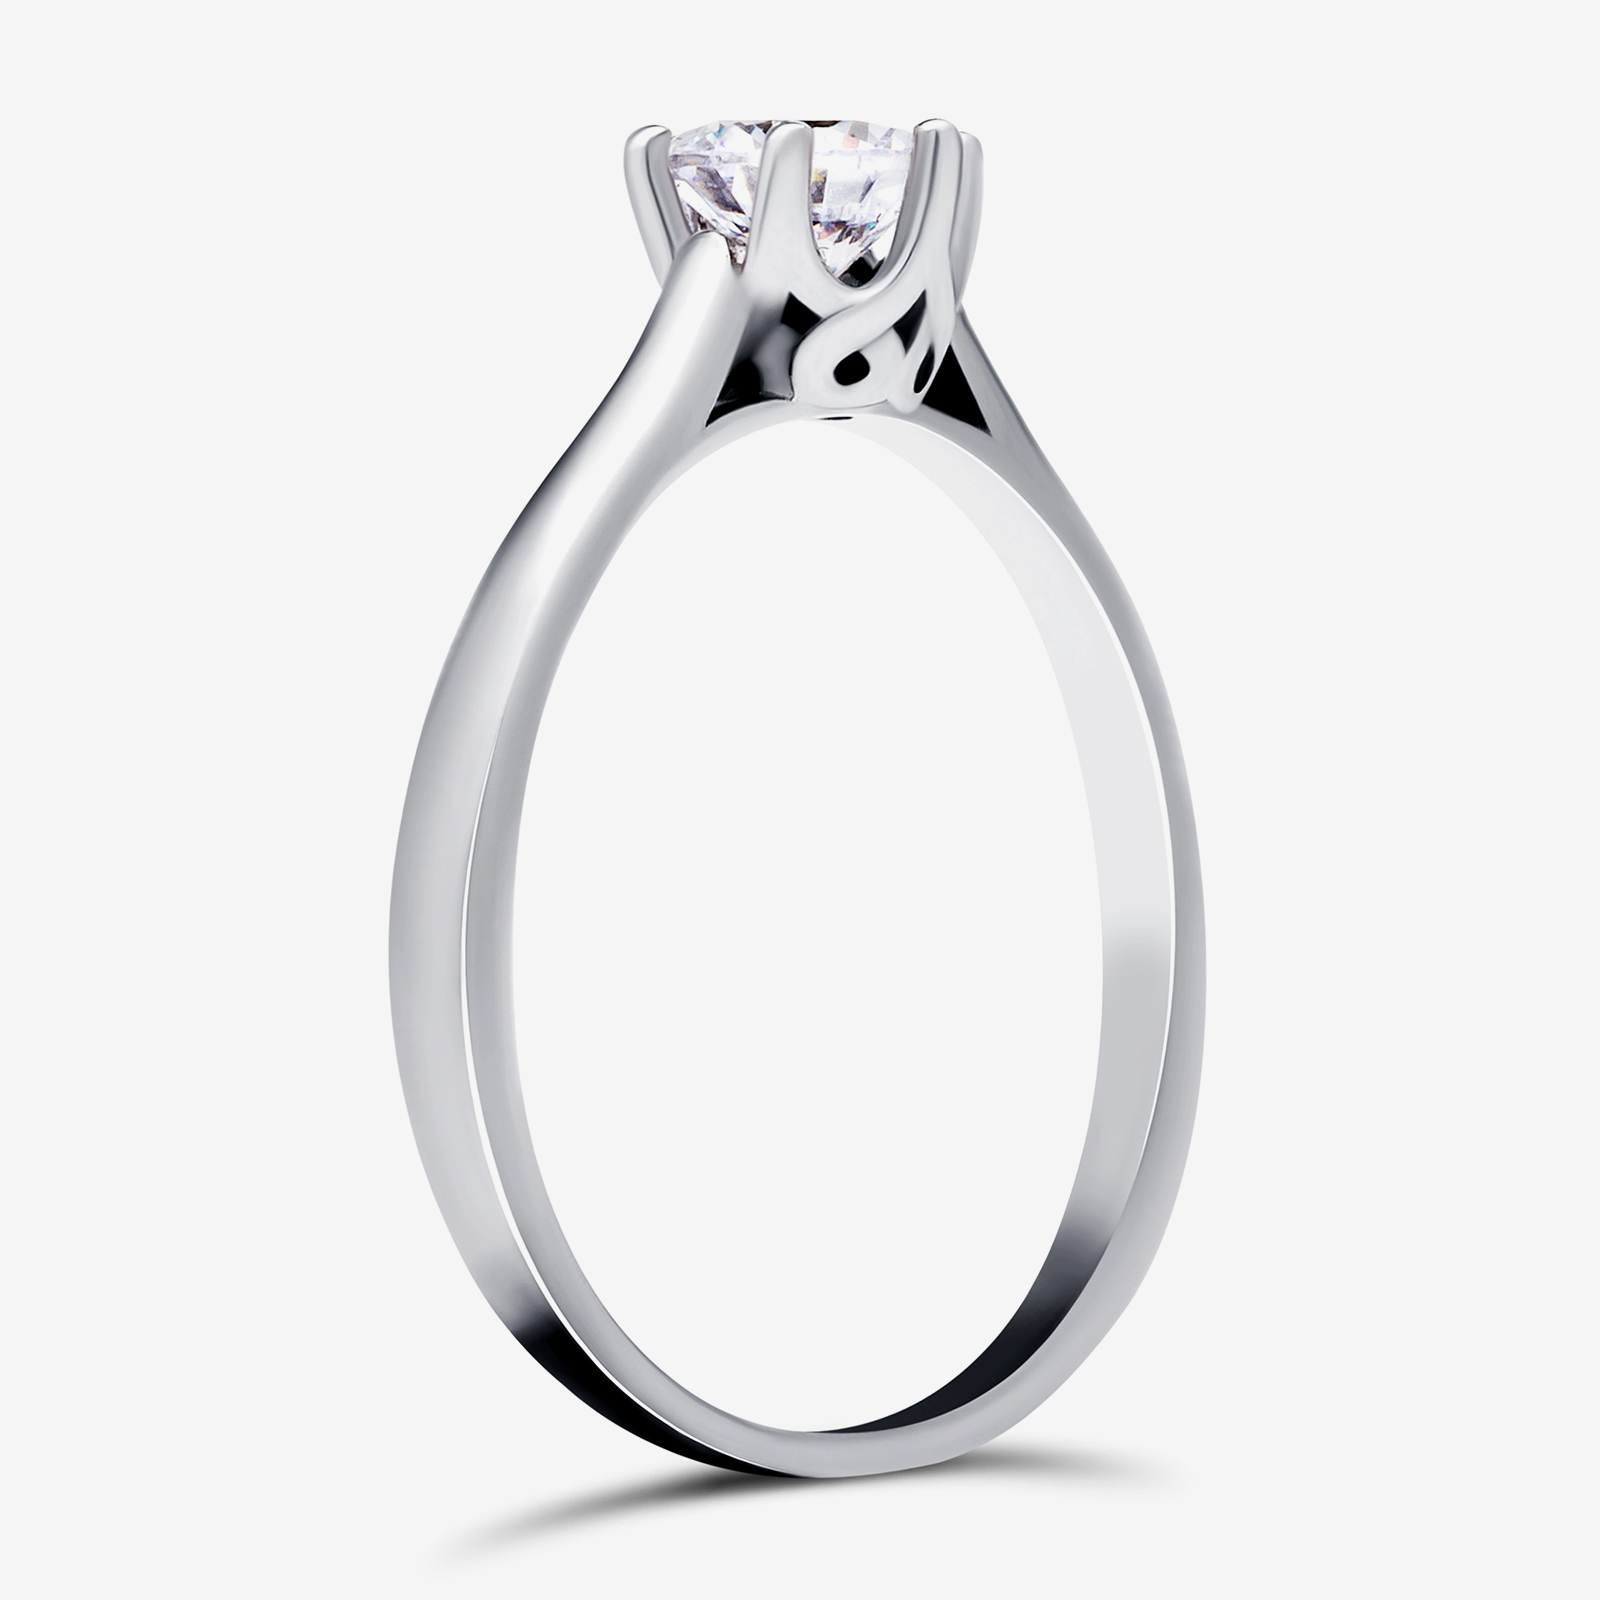 Ring product picture